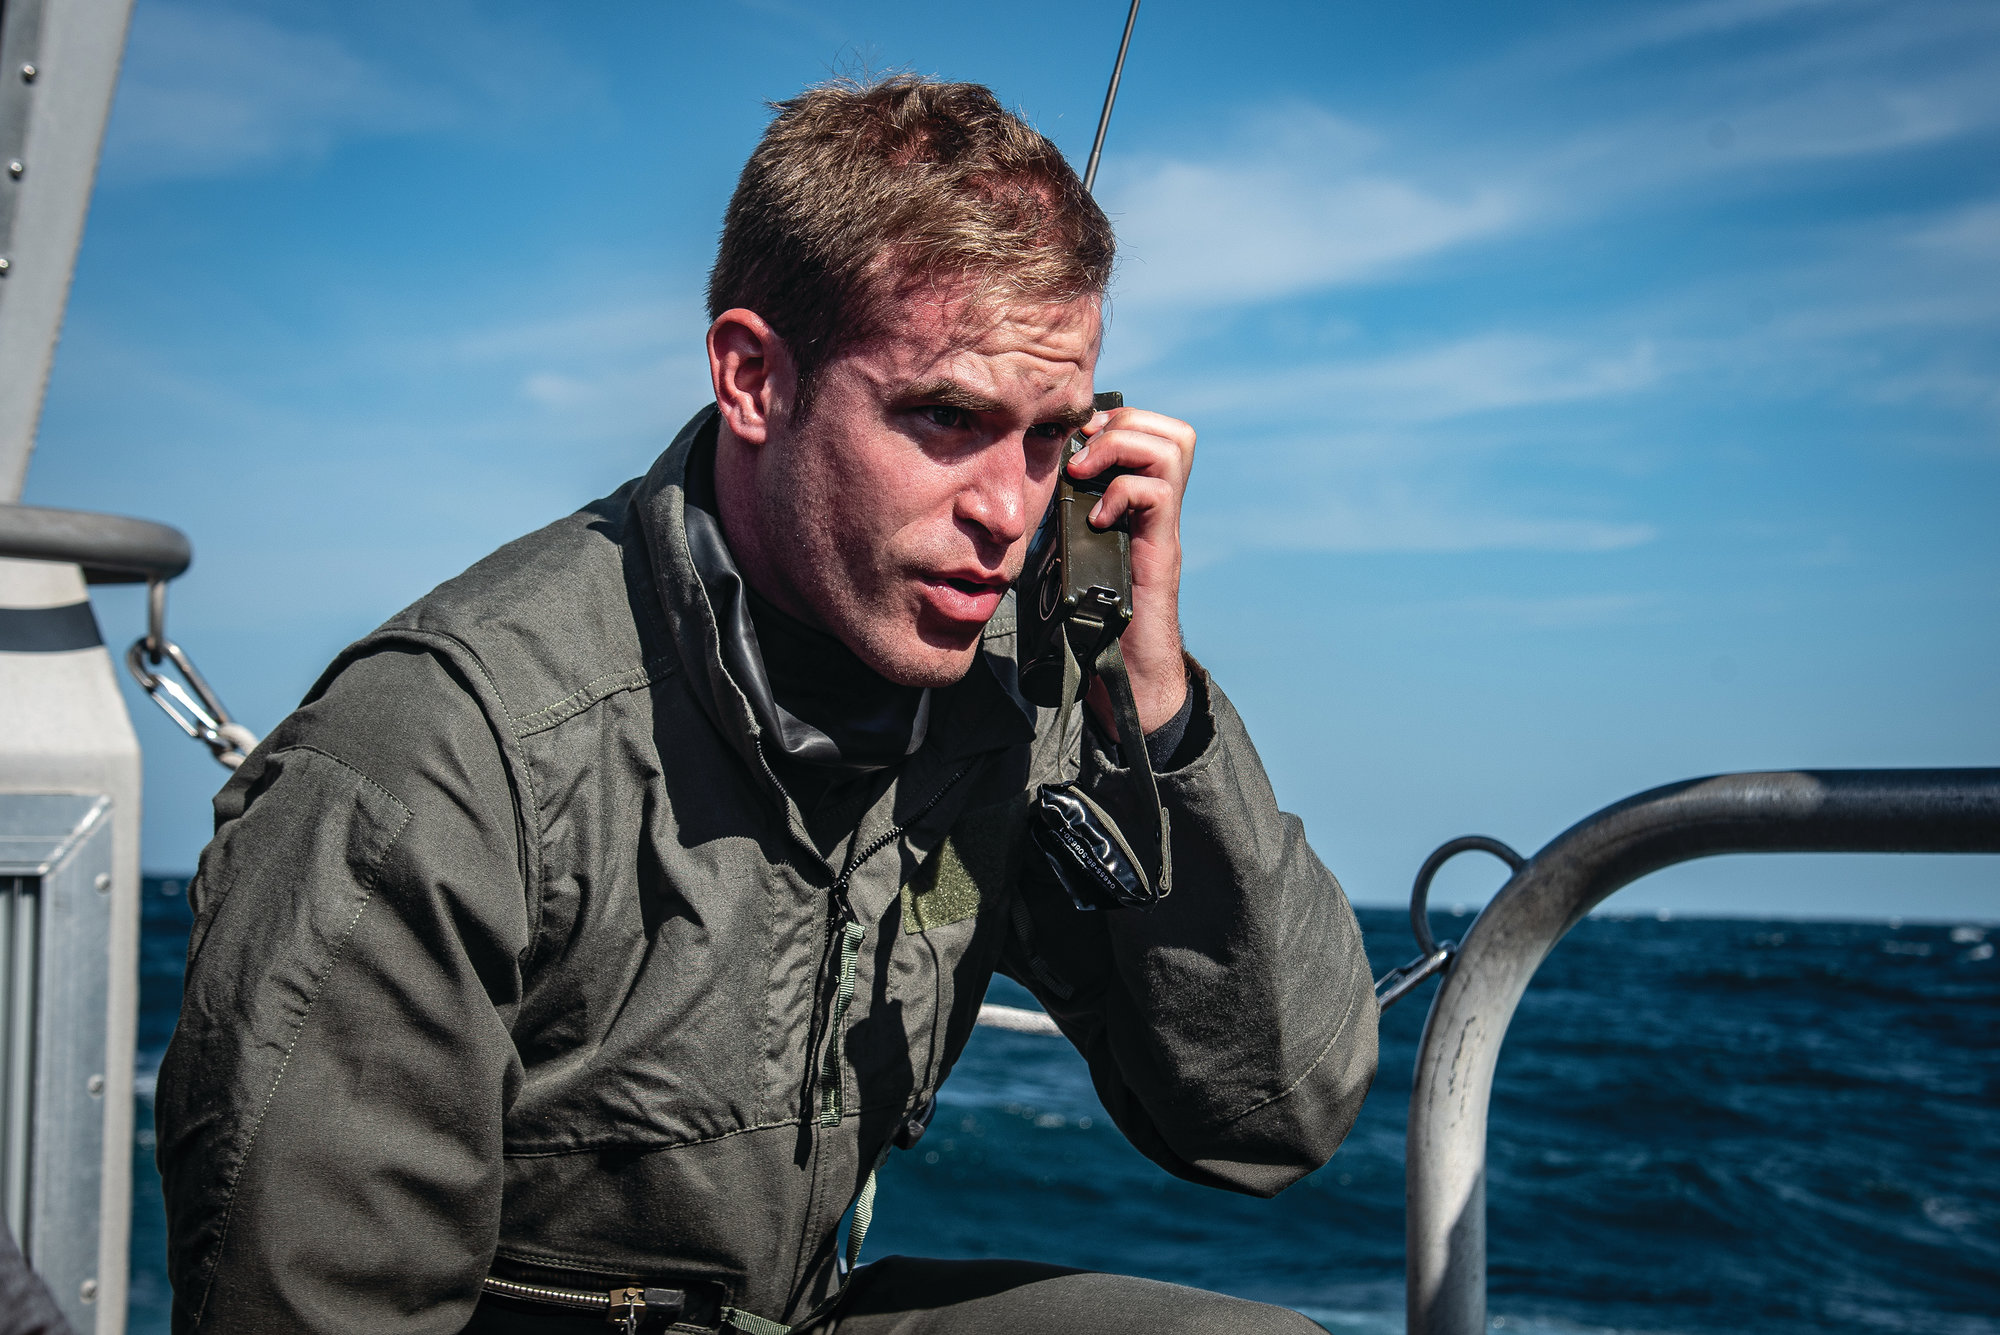 U.S. Air Force Capt. Kyle Rasmussen, 55th Fighter Squadron pilot, makes a mayday call during a search-and-recovery exercise. Pilots had to work with a rescue helicopter to indicate where they were located in the water.